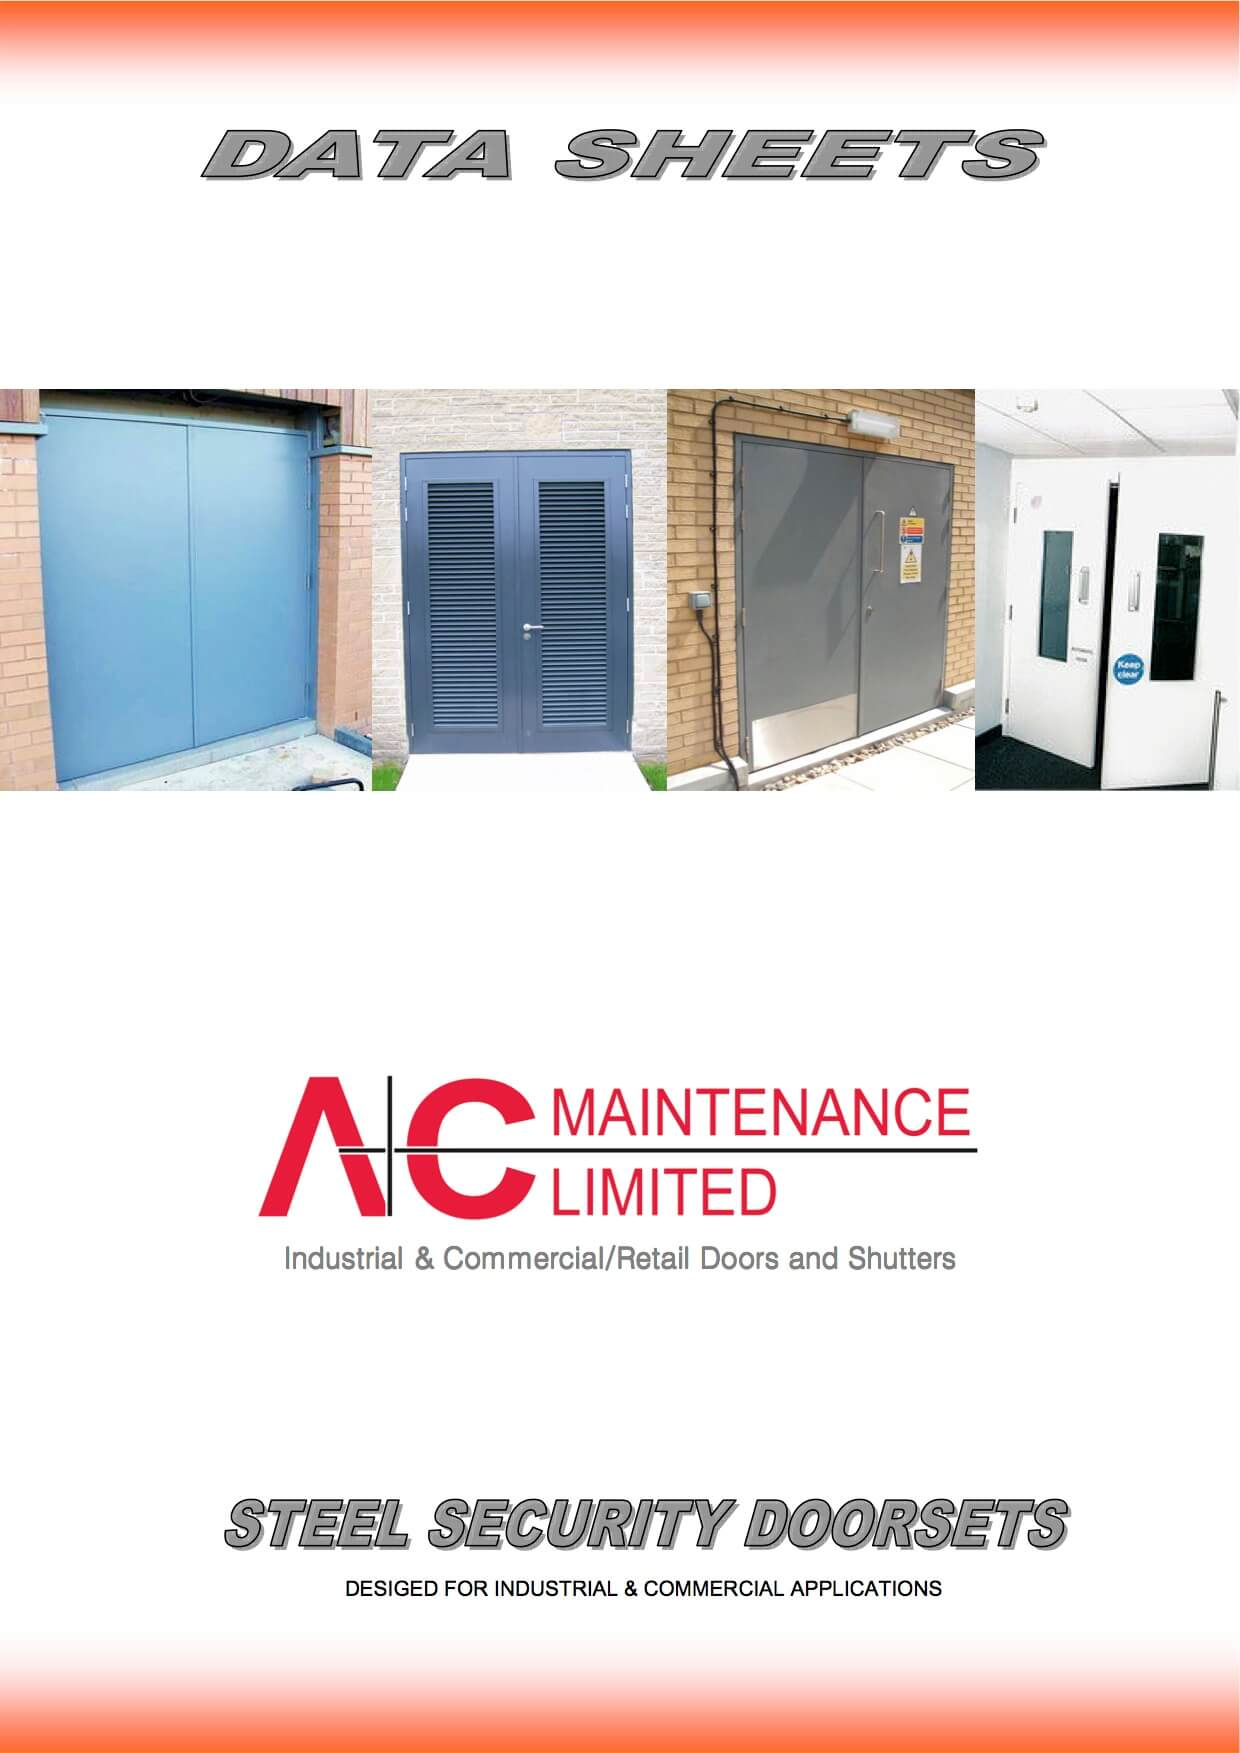 http://www.aandcmaintenance.co.uk/wp-content/uploads/Steel-Hinged-Doors-Data-Sheets.jpg